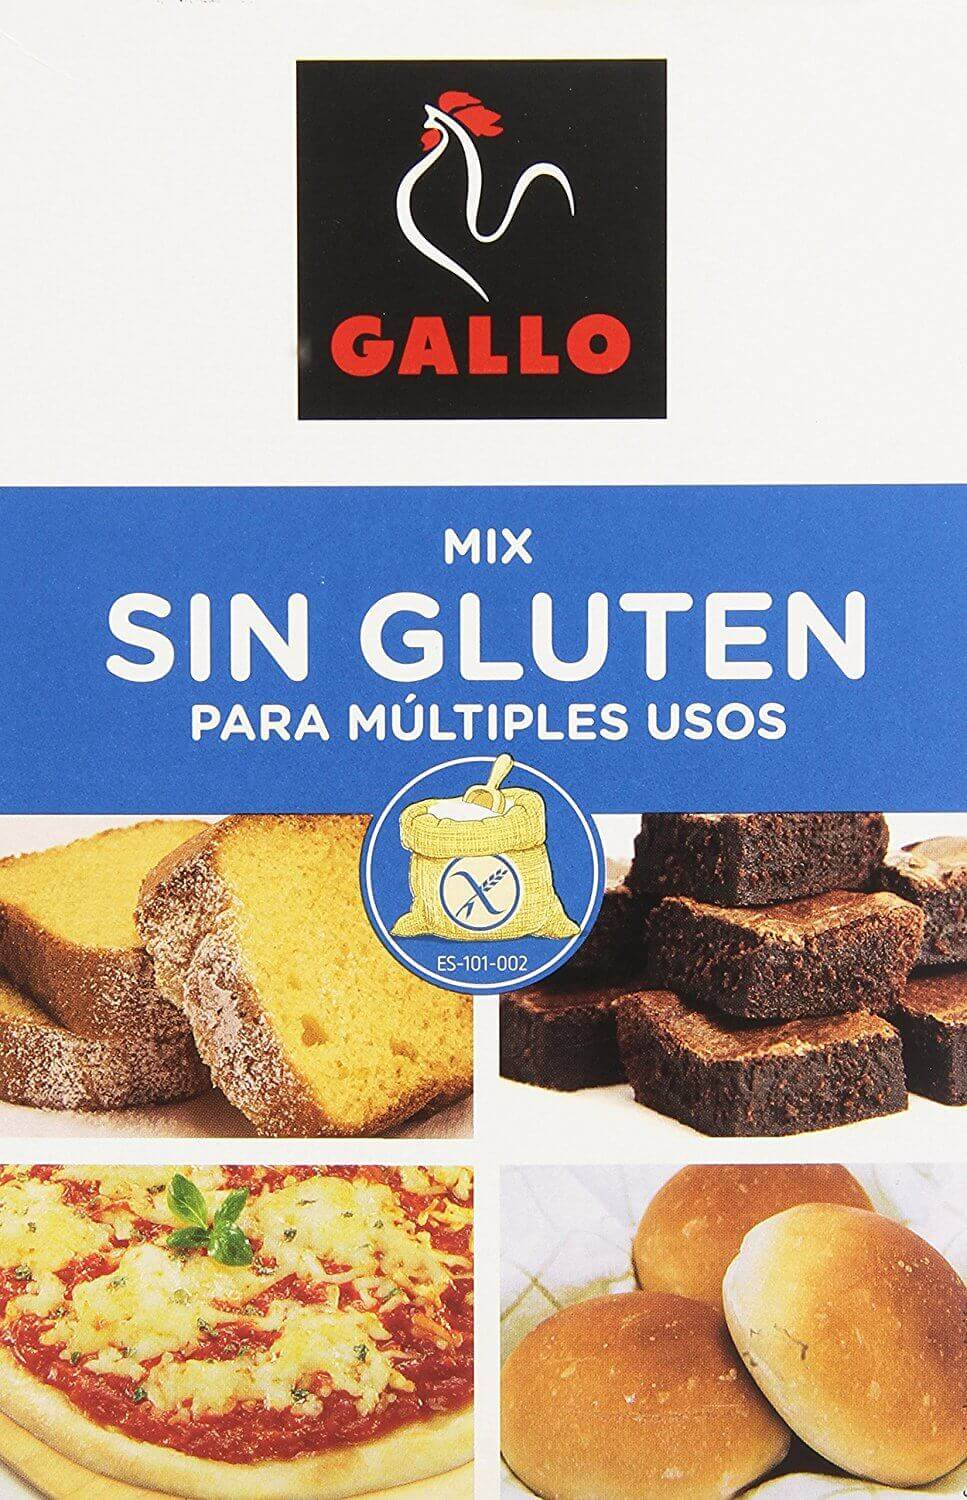 mix harina sin gluten Gallo